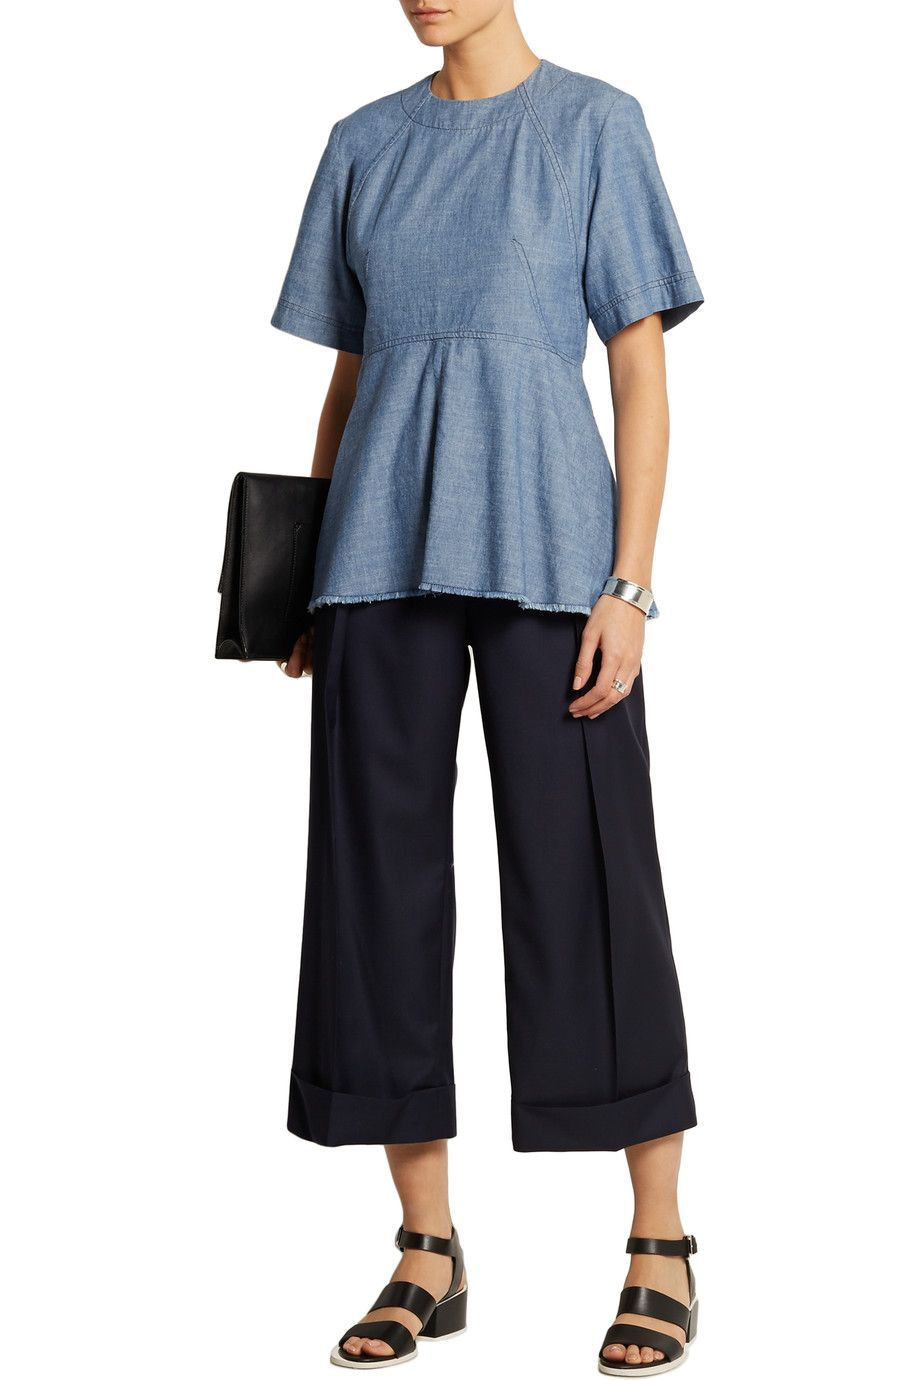 Shop on-sale Proenza Schouler Cotton-chambray top. Browse other discount designer Tops & more on The Most Fashionable Fashion Outlet, THE OUTNET.COM